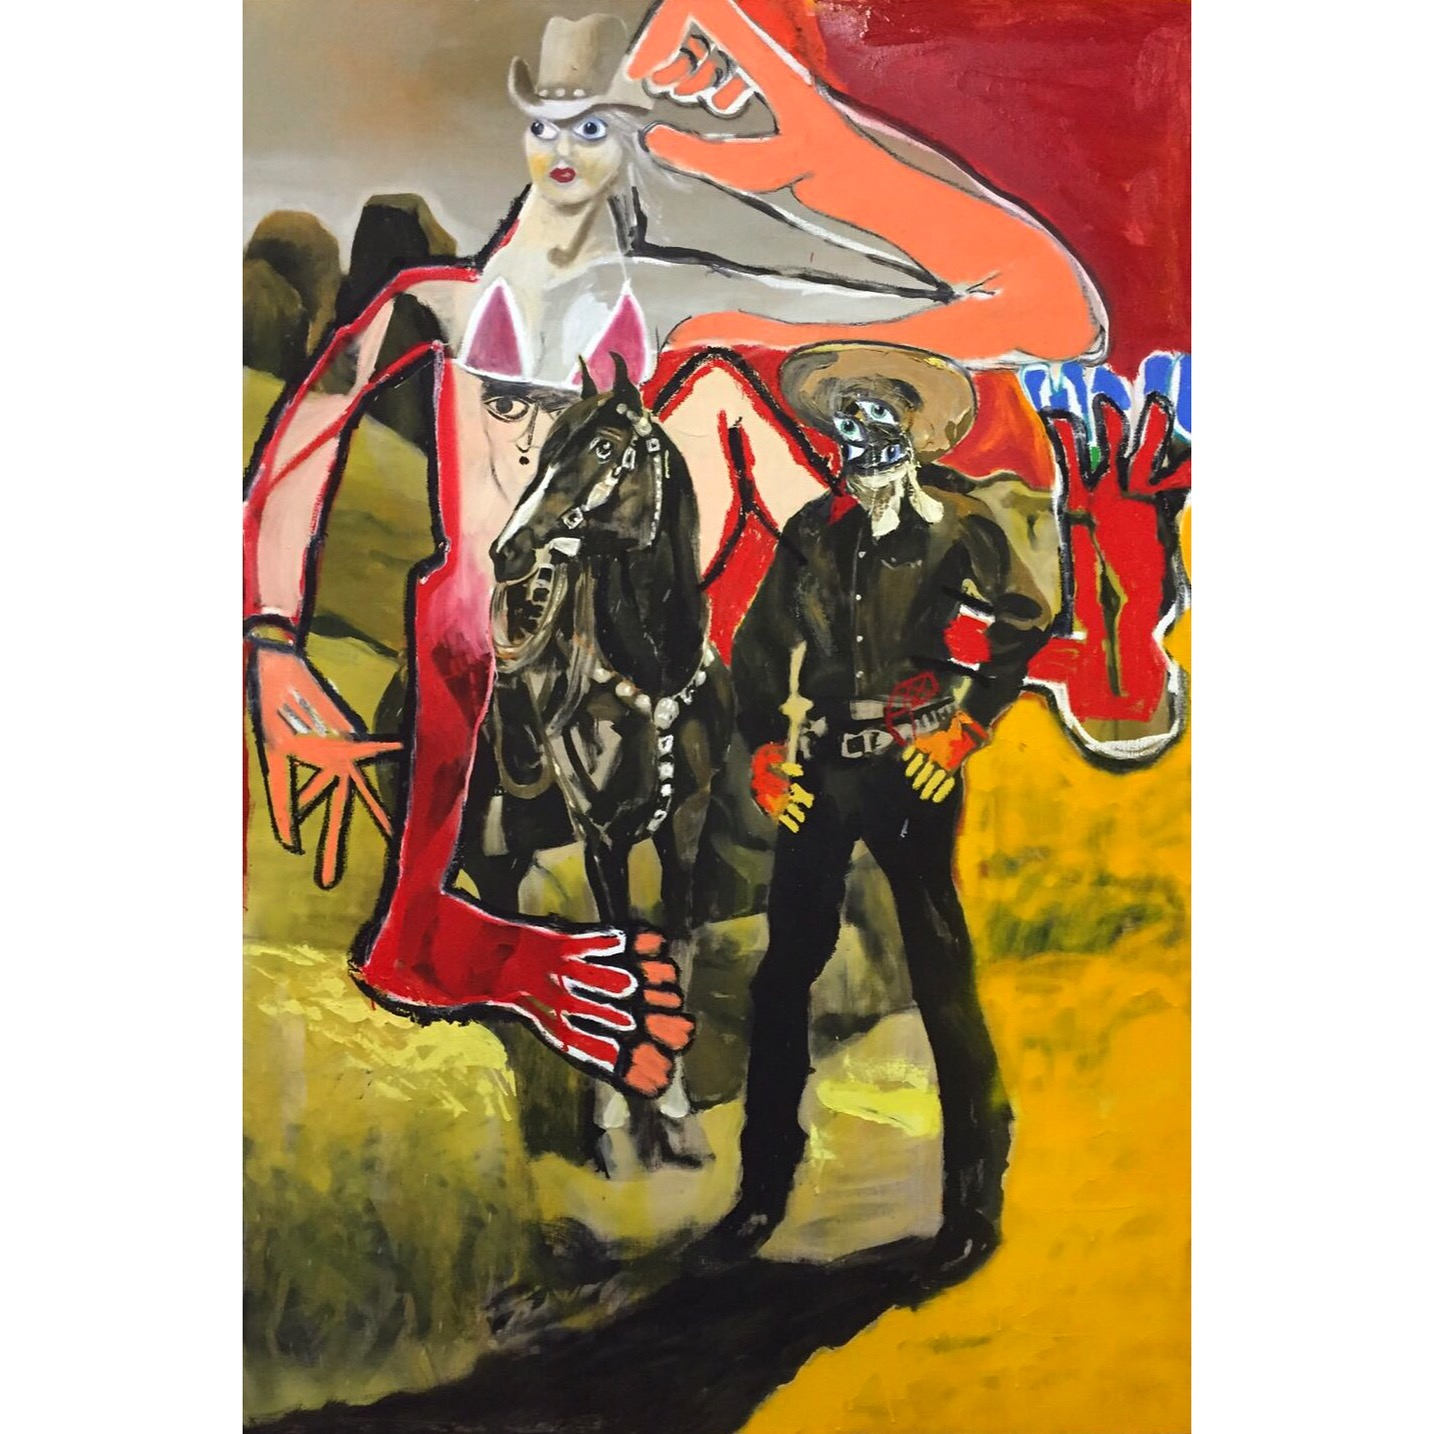 Oil, Oil Stick, Acrylic, and Spray Paint on Canvas  77 x 51 in  195 x 130 cm